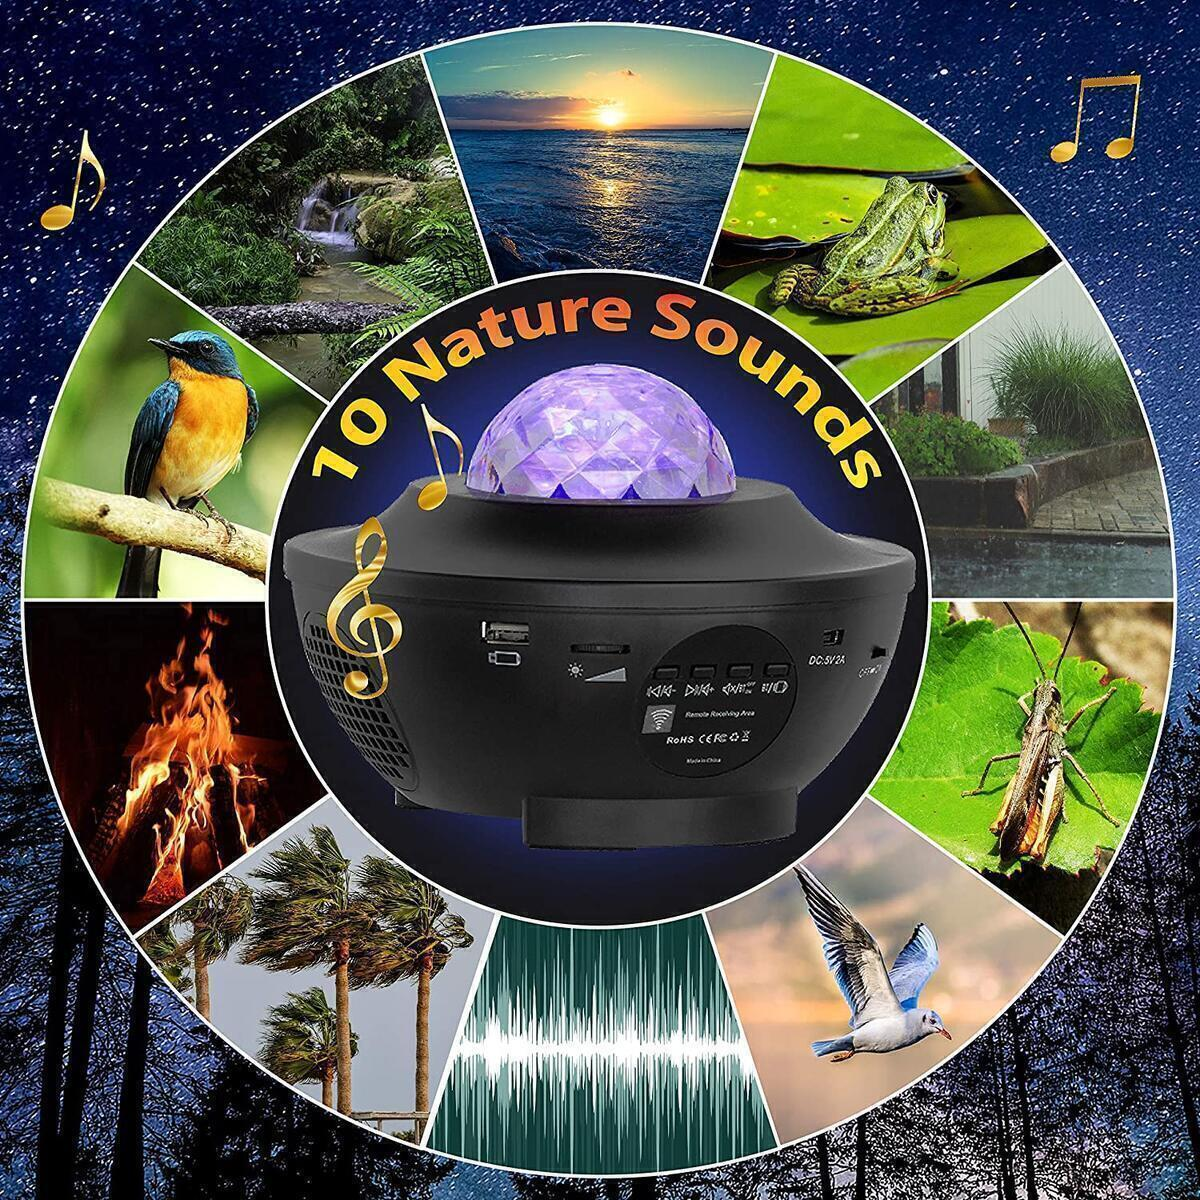 Star Projector Night Light LED Color Light Show Projector Starry Night Light Projector for Kids Adults Bedroom with Nature Sounds Night Sky Projector with Bluetooth Music Speaker for Party